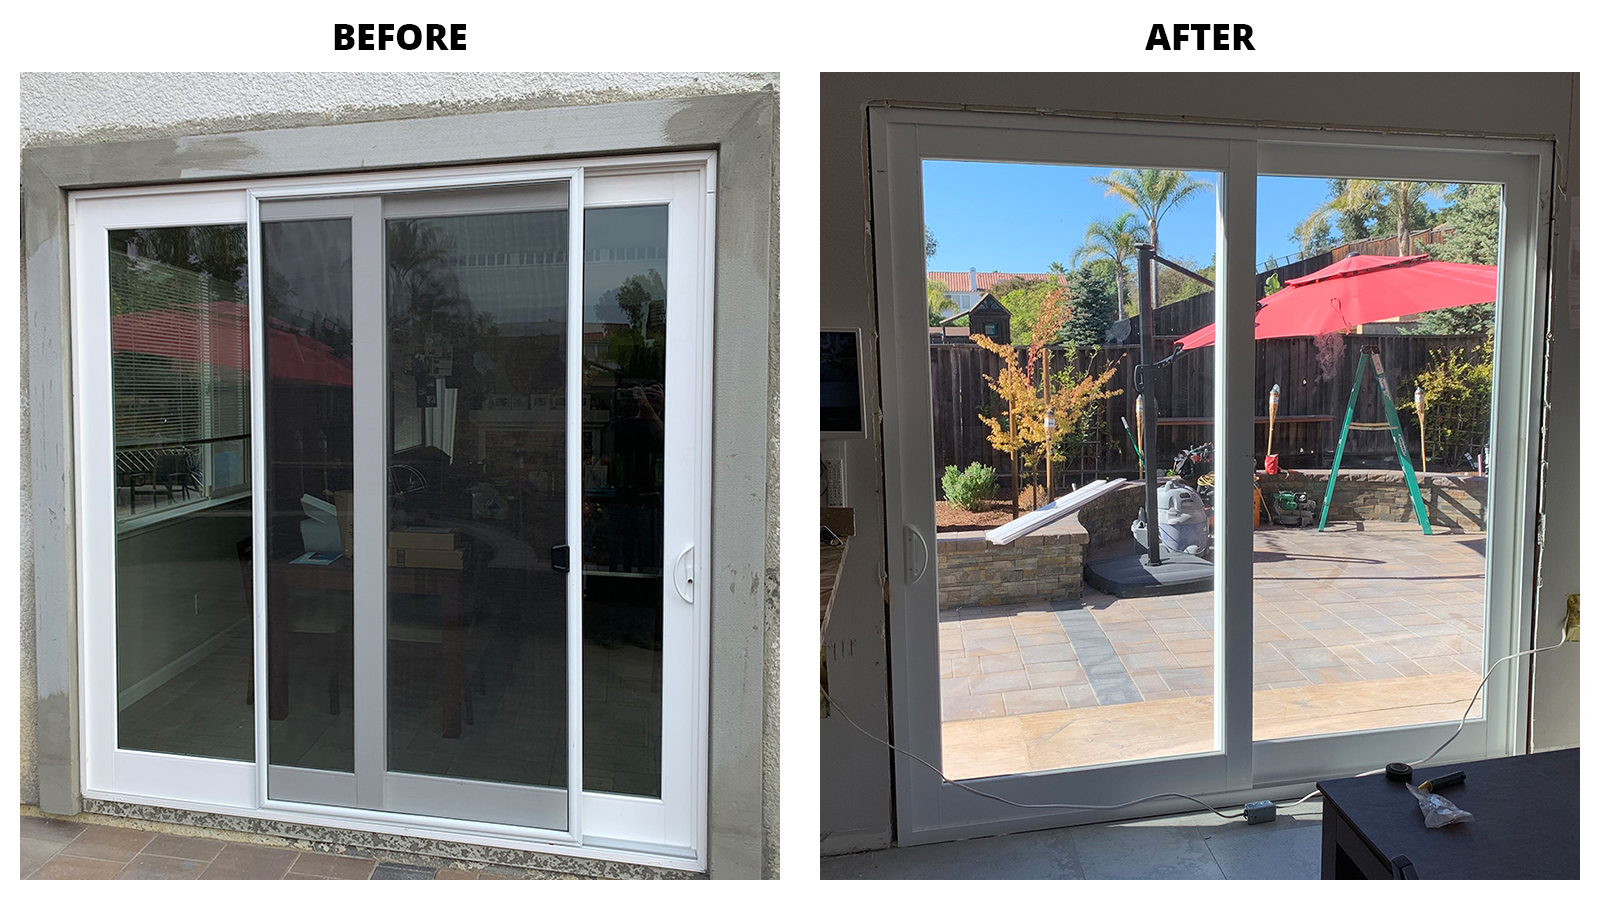 Cut Out Campbell CA Replacement Windows And Doors